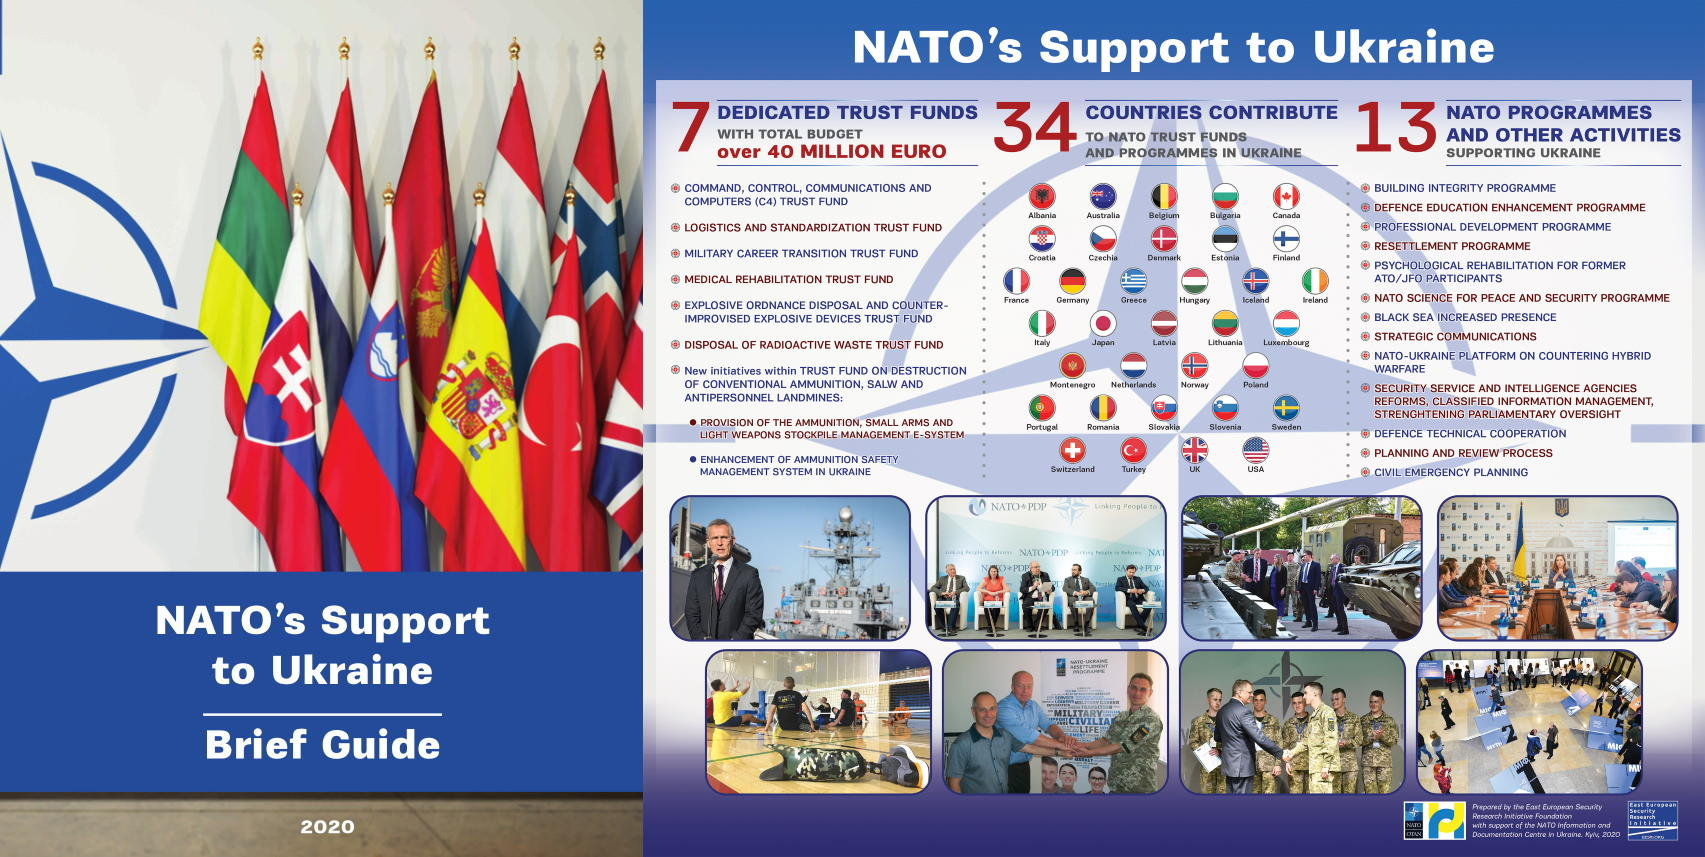 NATO's Support to Ukraine: Brief Guide 2020